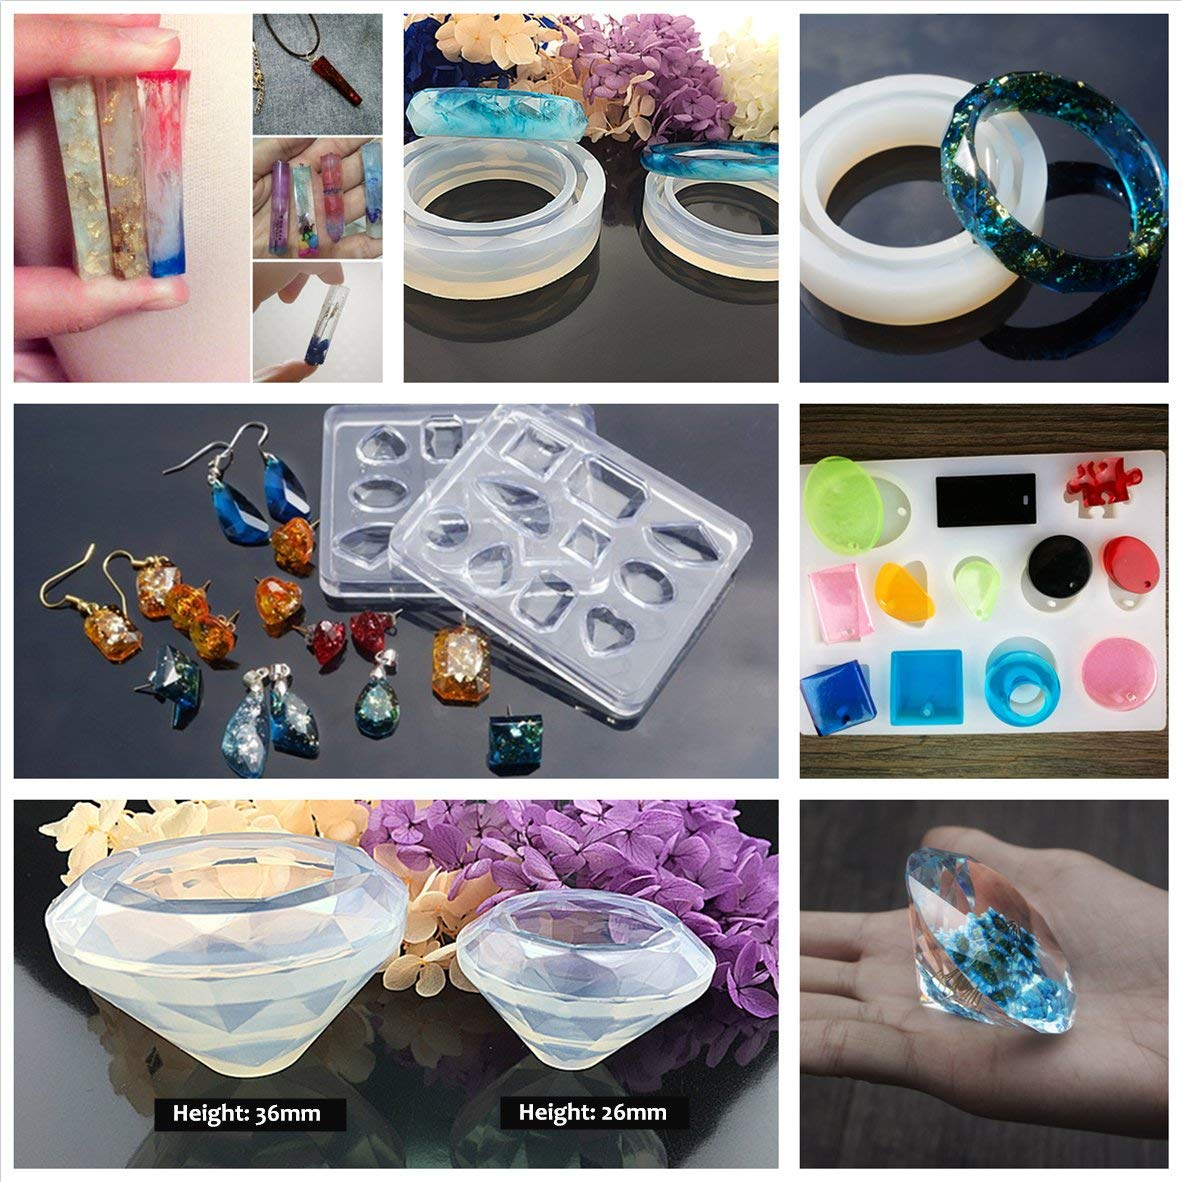 INNICON 250g Resin Casting Molds Kit 22 Silicone Resin Snowflake Comb Angel Wings Crown Molds 12 Glitter Sequins 14x Open Back Bezels Traceless Tape with Lamp For DIY Charms Necklaces Earrings Making by INNICON (Image #4)